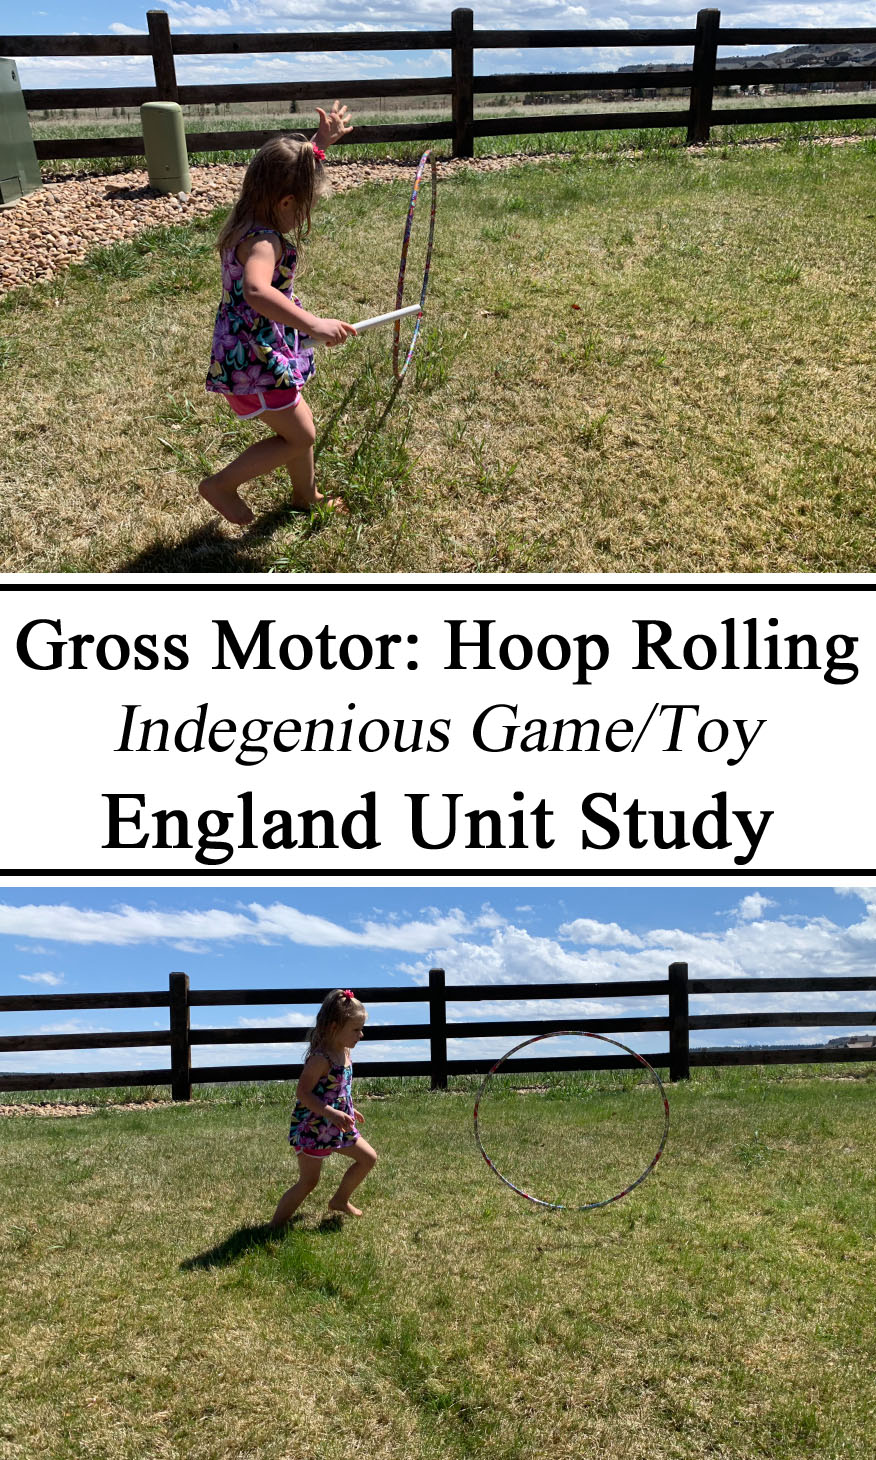 Homeschooling, Homeschool, England Unit Study, Great Britain,UK, Gross Motor, Hoop Rolling Trungling, England London Indegenious Game / Toy, Hands on learning, Active, Preschool, PreK, Kindergarten, Teachers, Parents, Inspiration, Ideas, Activities for Kids, Summer